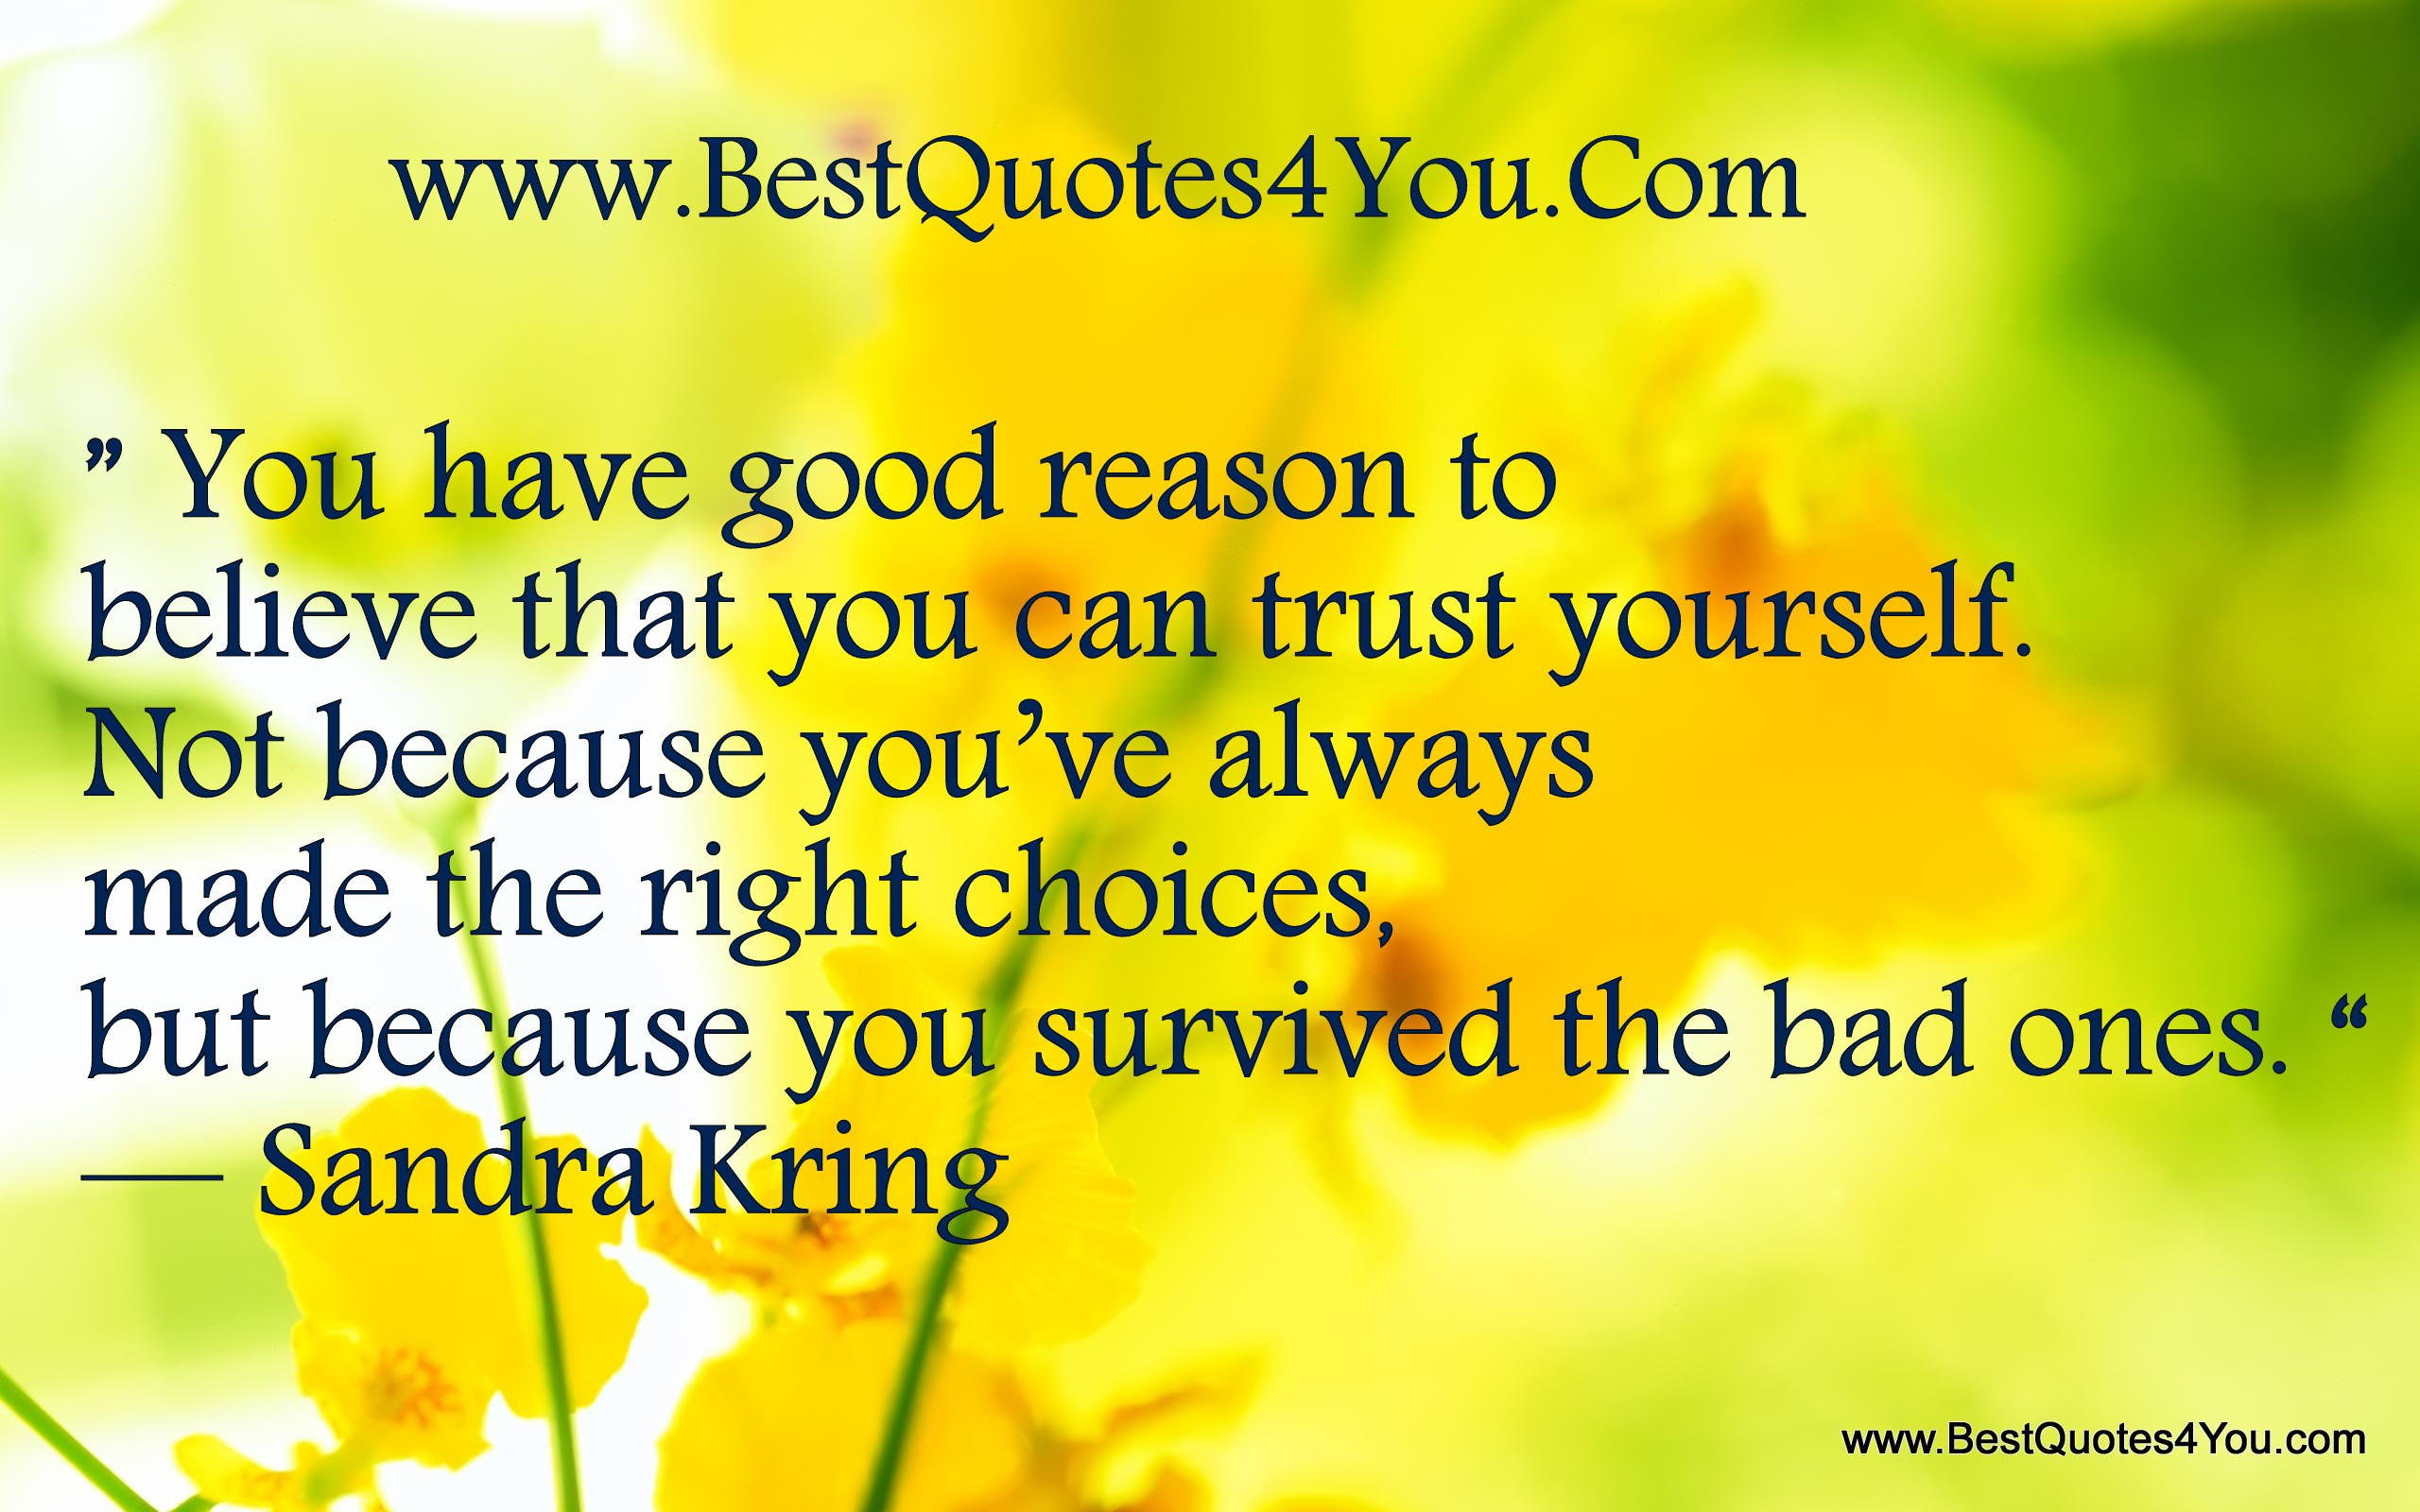 You Have Good Reason To Believe That You Can Trust Yourself. Not Because You've Always Made The Right Choices, But Because You Survived The Bad Ones